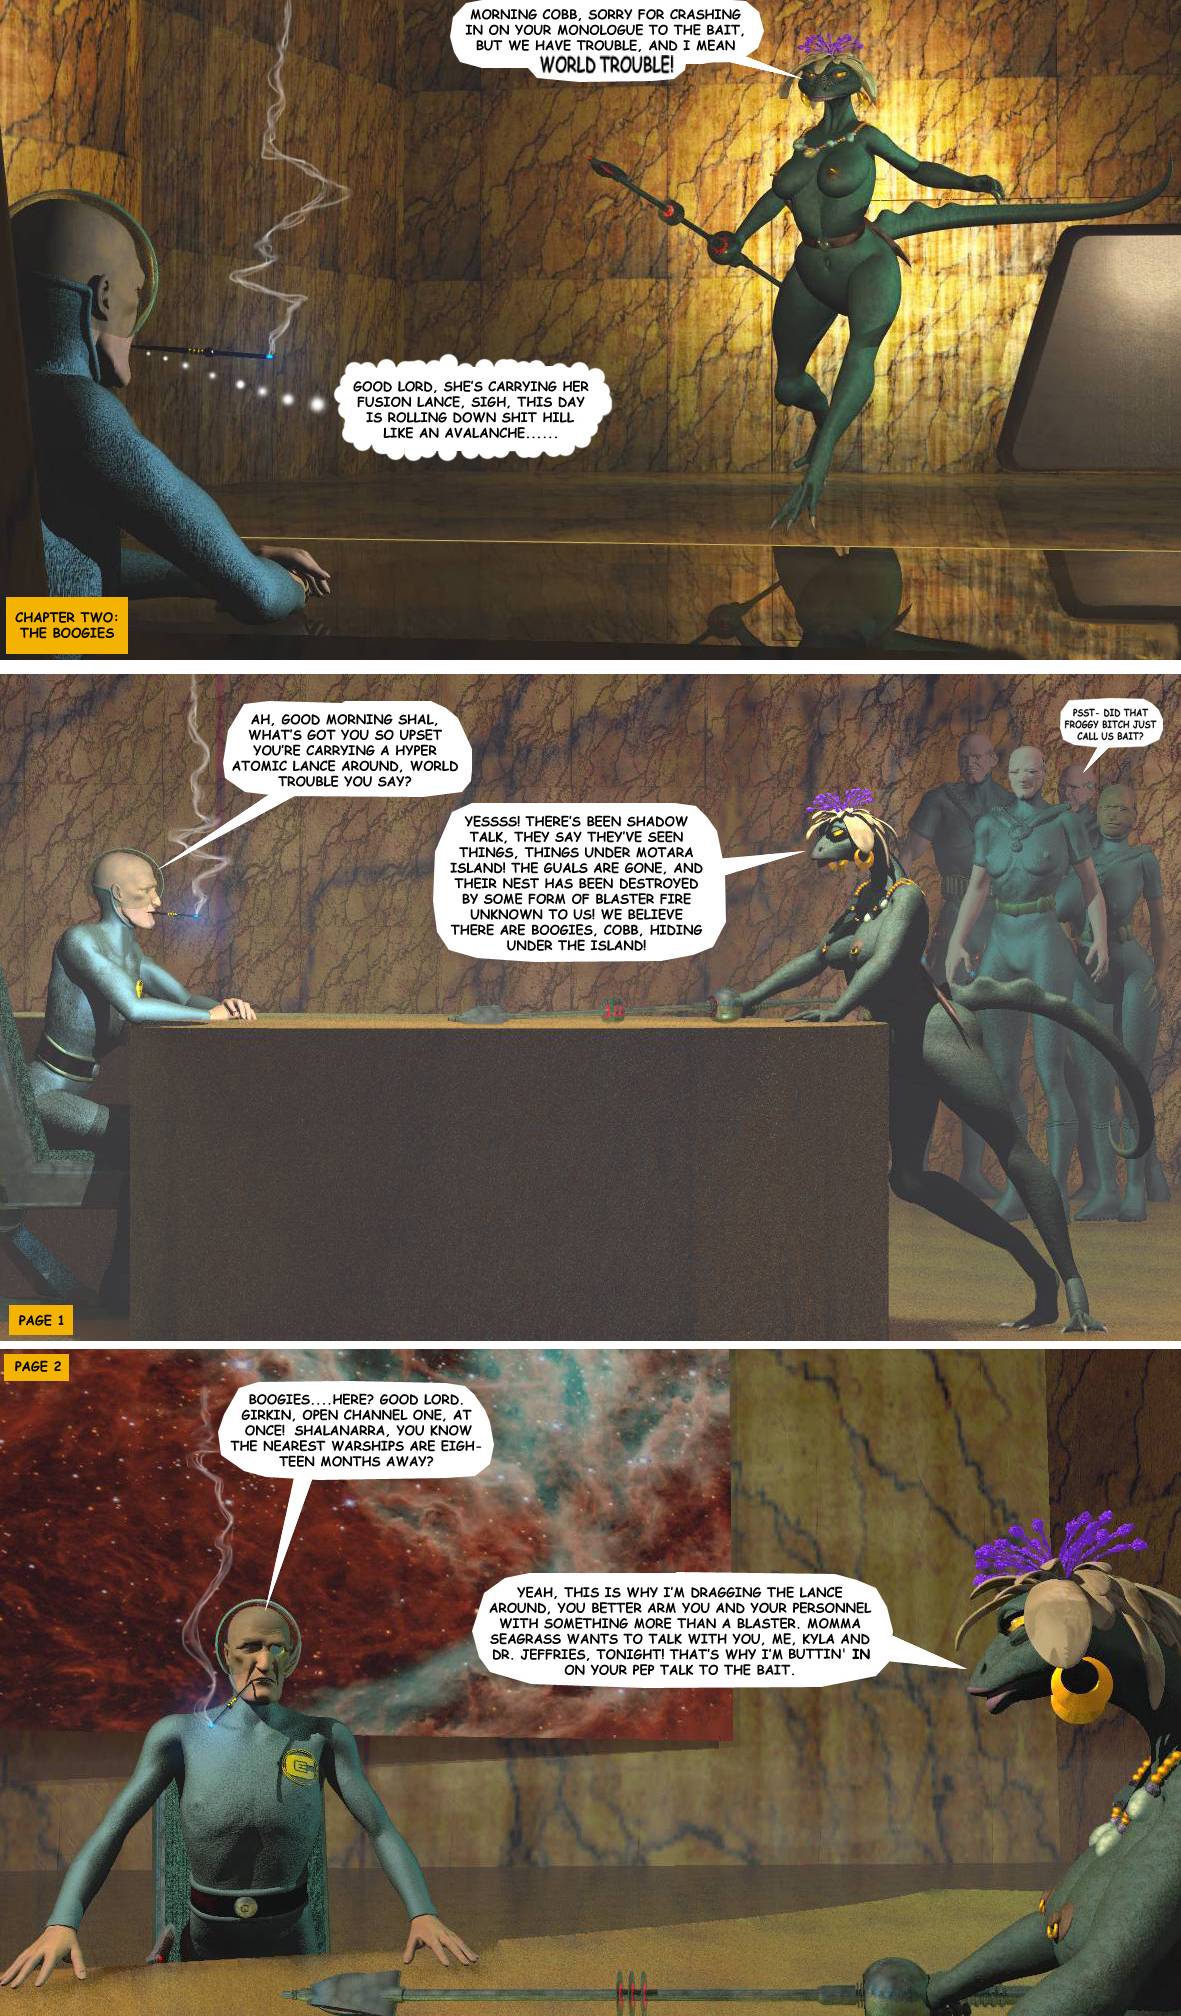 STORM OVER WHOOMERA: PAGE 8